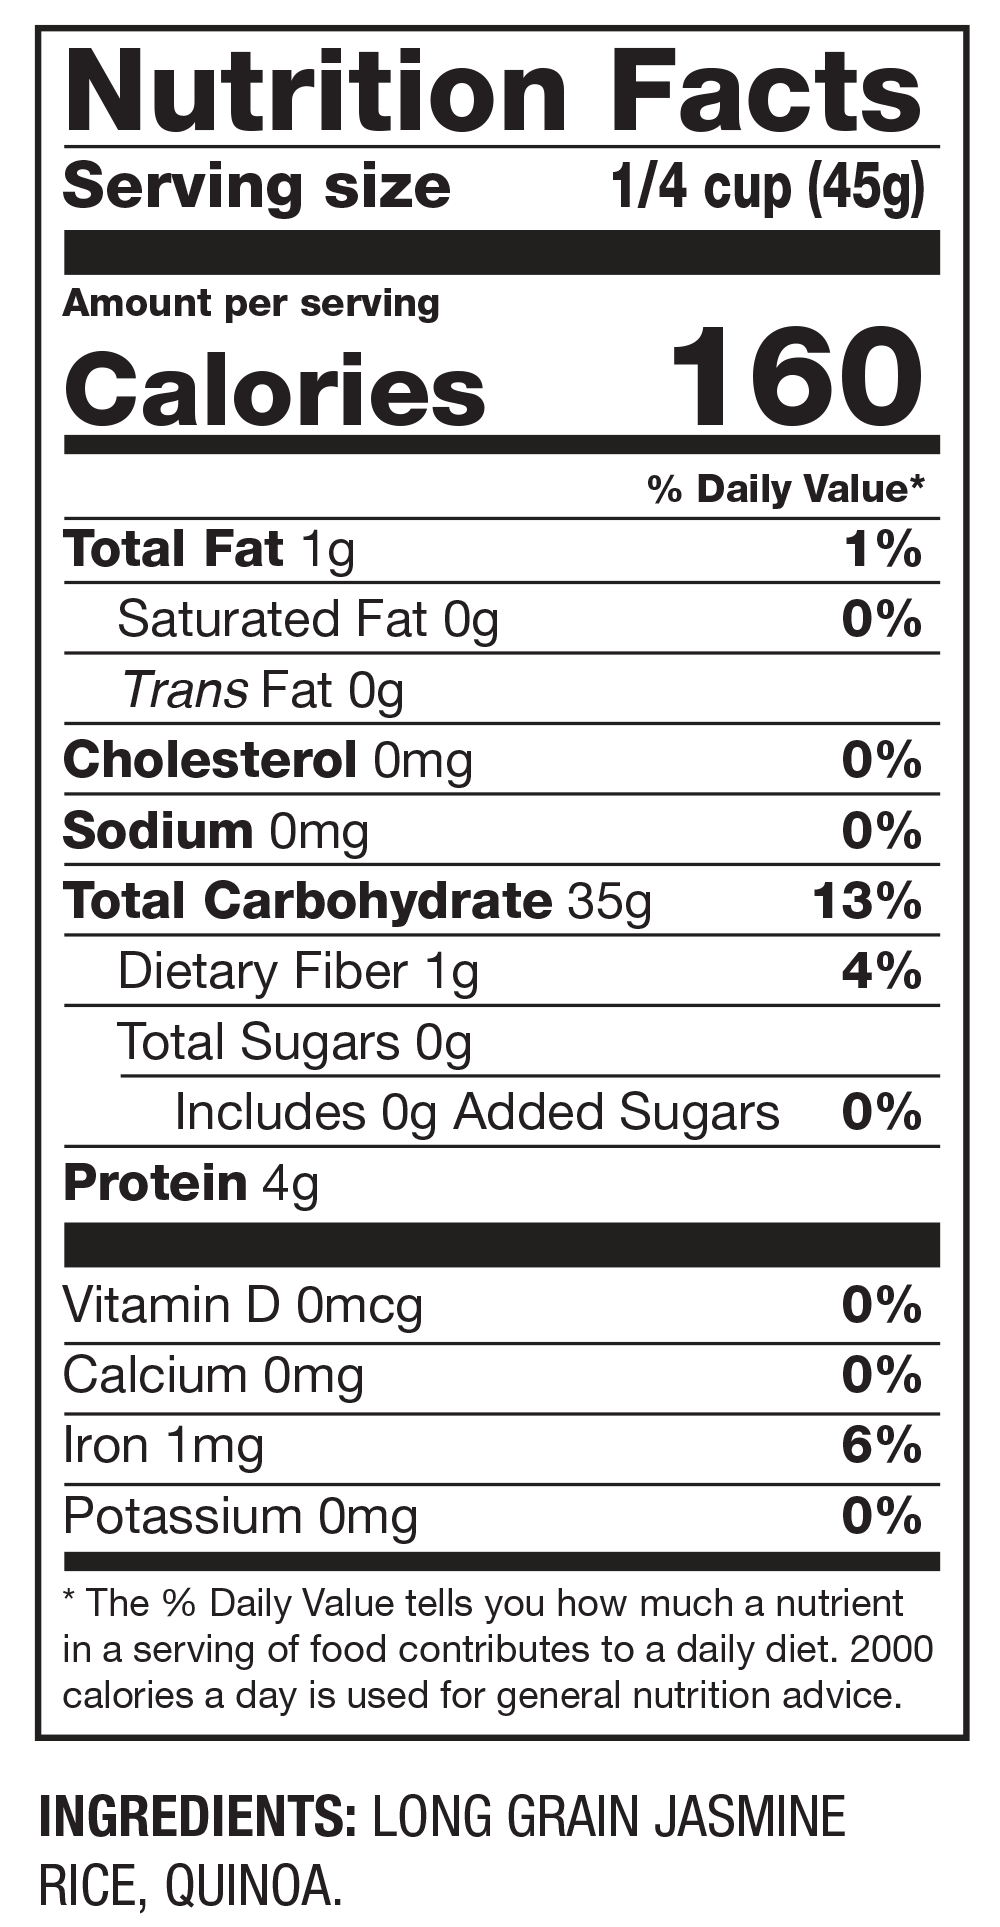 Nutrition Facts Jasmine Rice with Quinoa